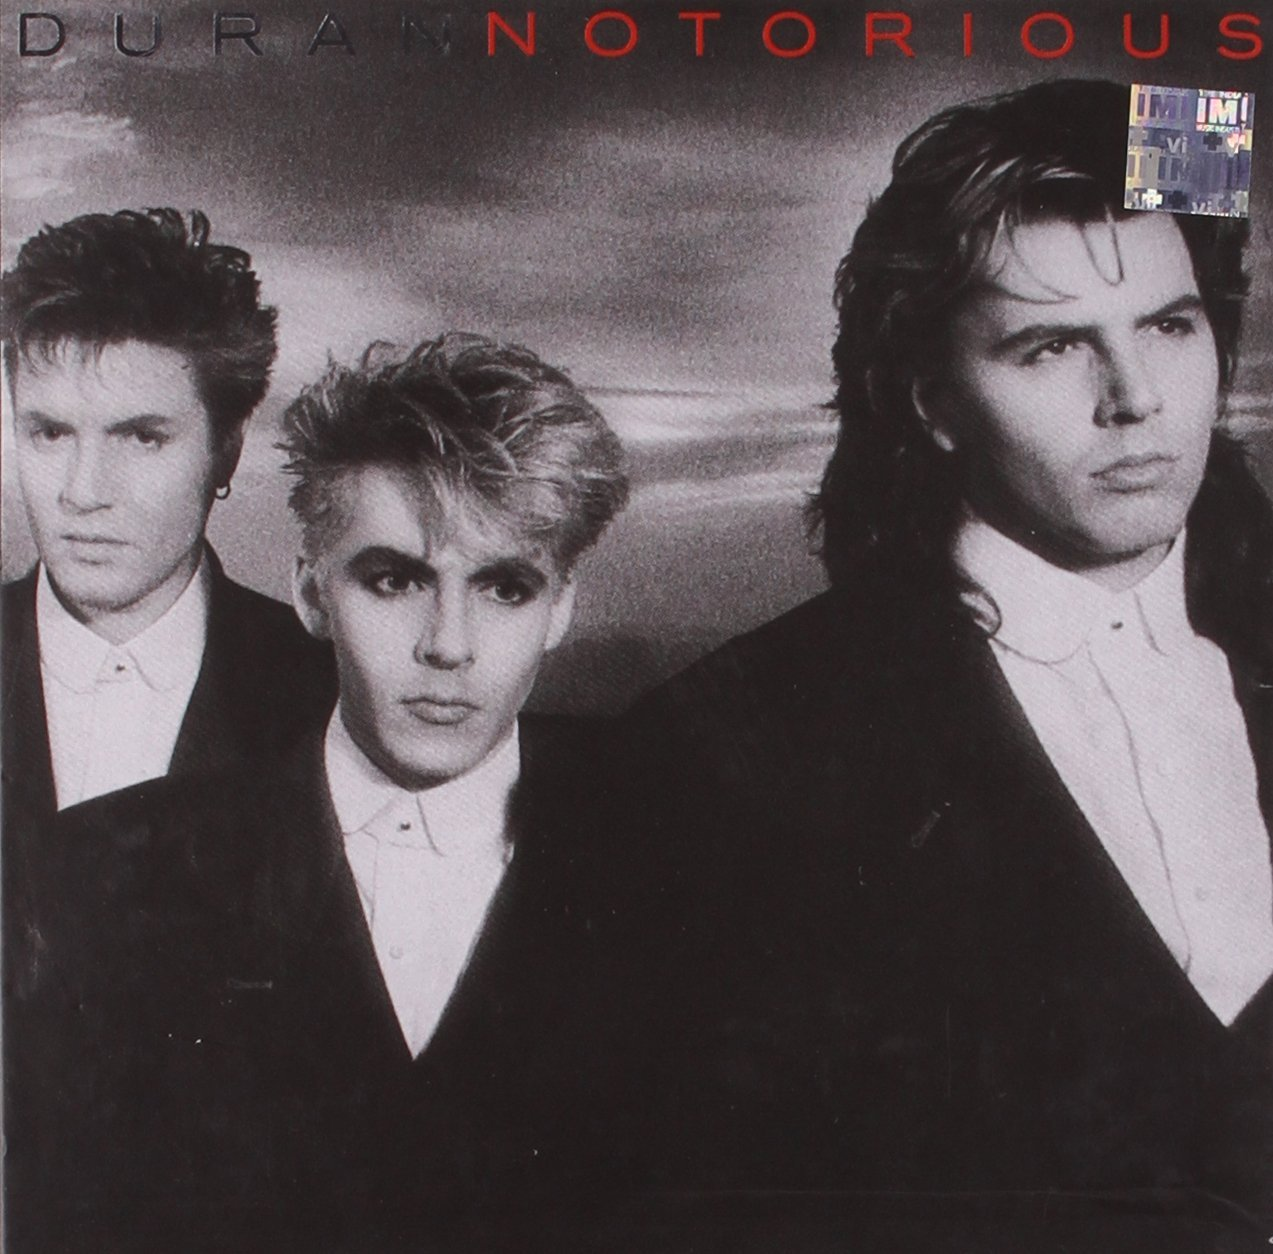 DURAN DURAN - NOTORIOUS (2 CD+DVD) (CD)